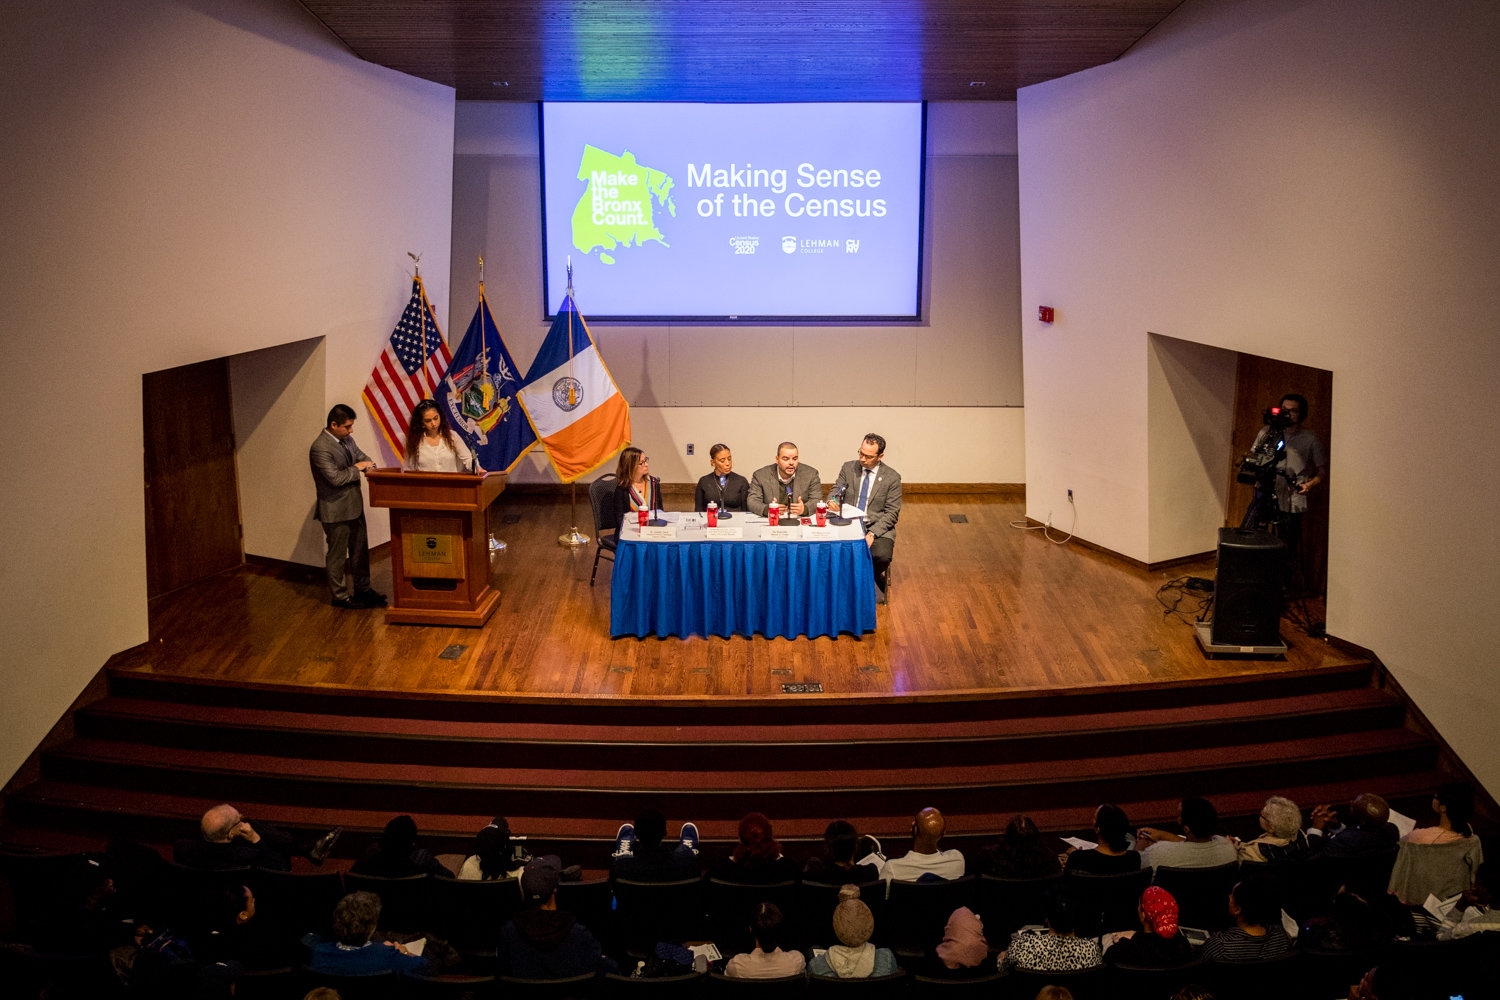 Lehman College hosted a panel discussion featuring a mix of academics, local and federal officials talking about the upcoming census, and how crucial it is to get an accurate count. Federal funding hinges on the number of people tallied in the census.